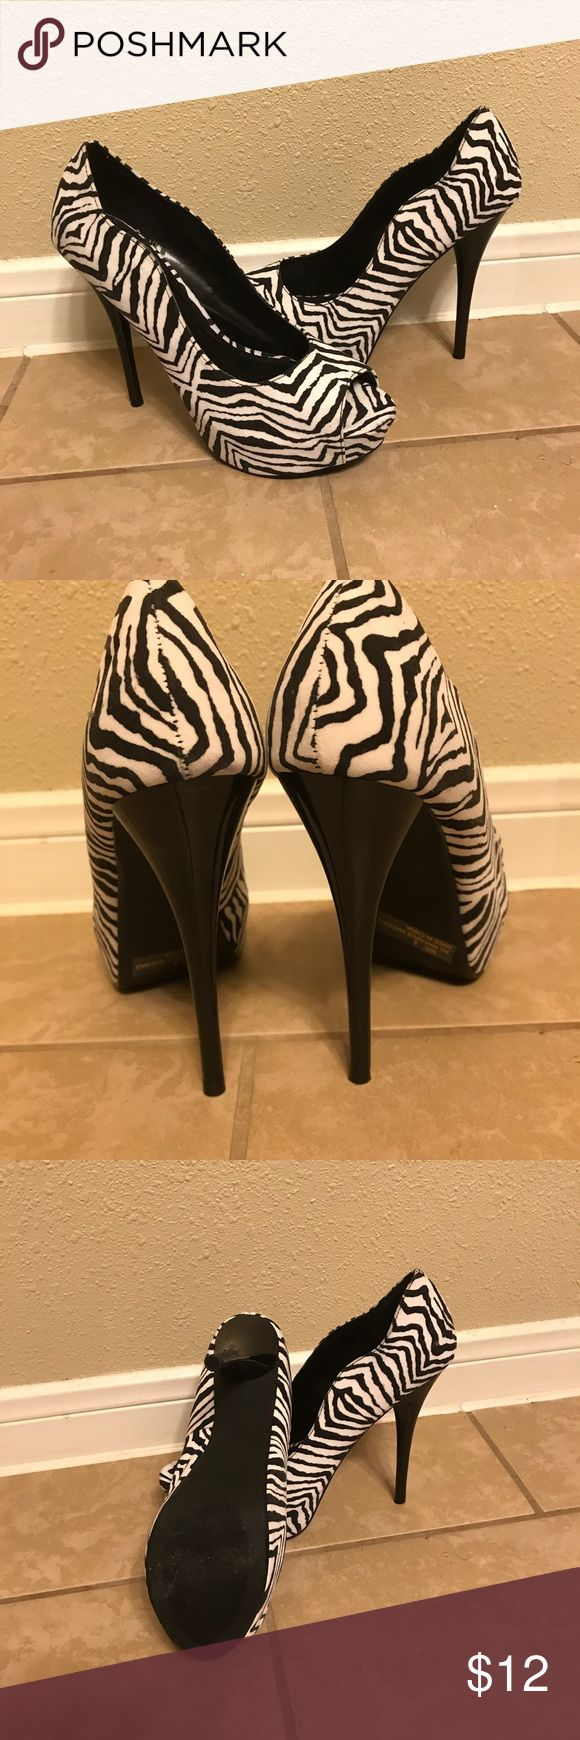 "6 in Zebra Heels! New, never worn zebra heels! They are either 6 or 6.5"" *Make Offer* Qupid Shoes Heels"